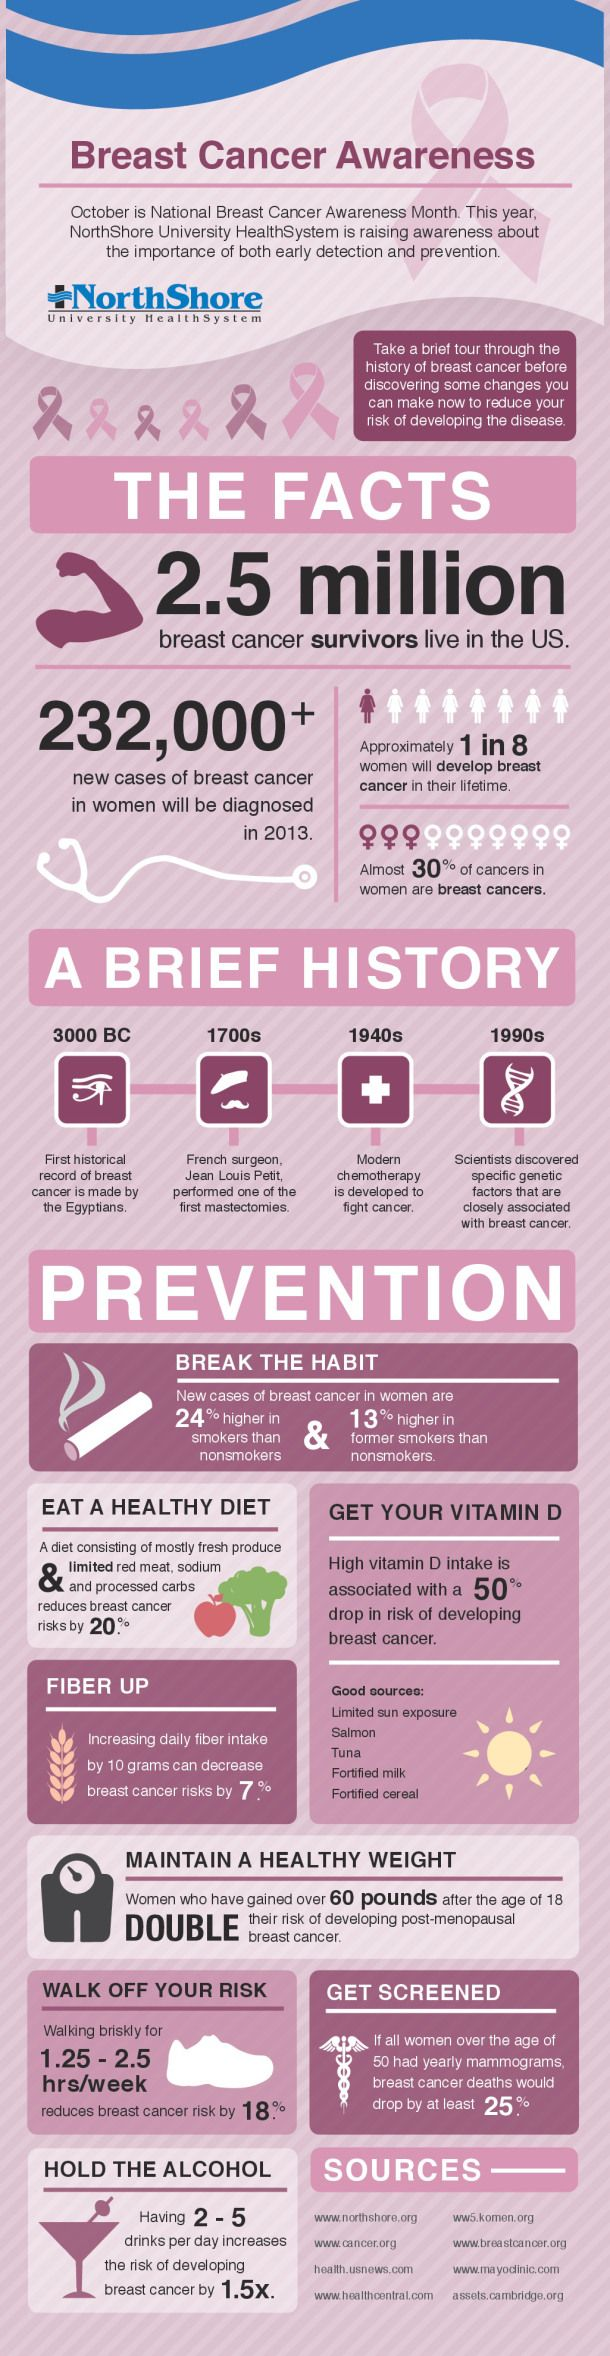 Breast Cancer Awareness [INFOGRAPHIC] #breastcancer #awareness